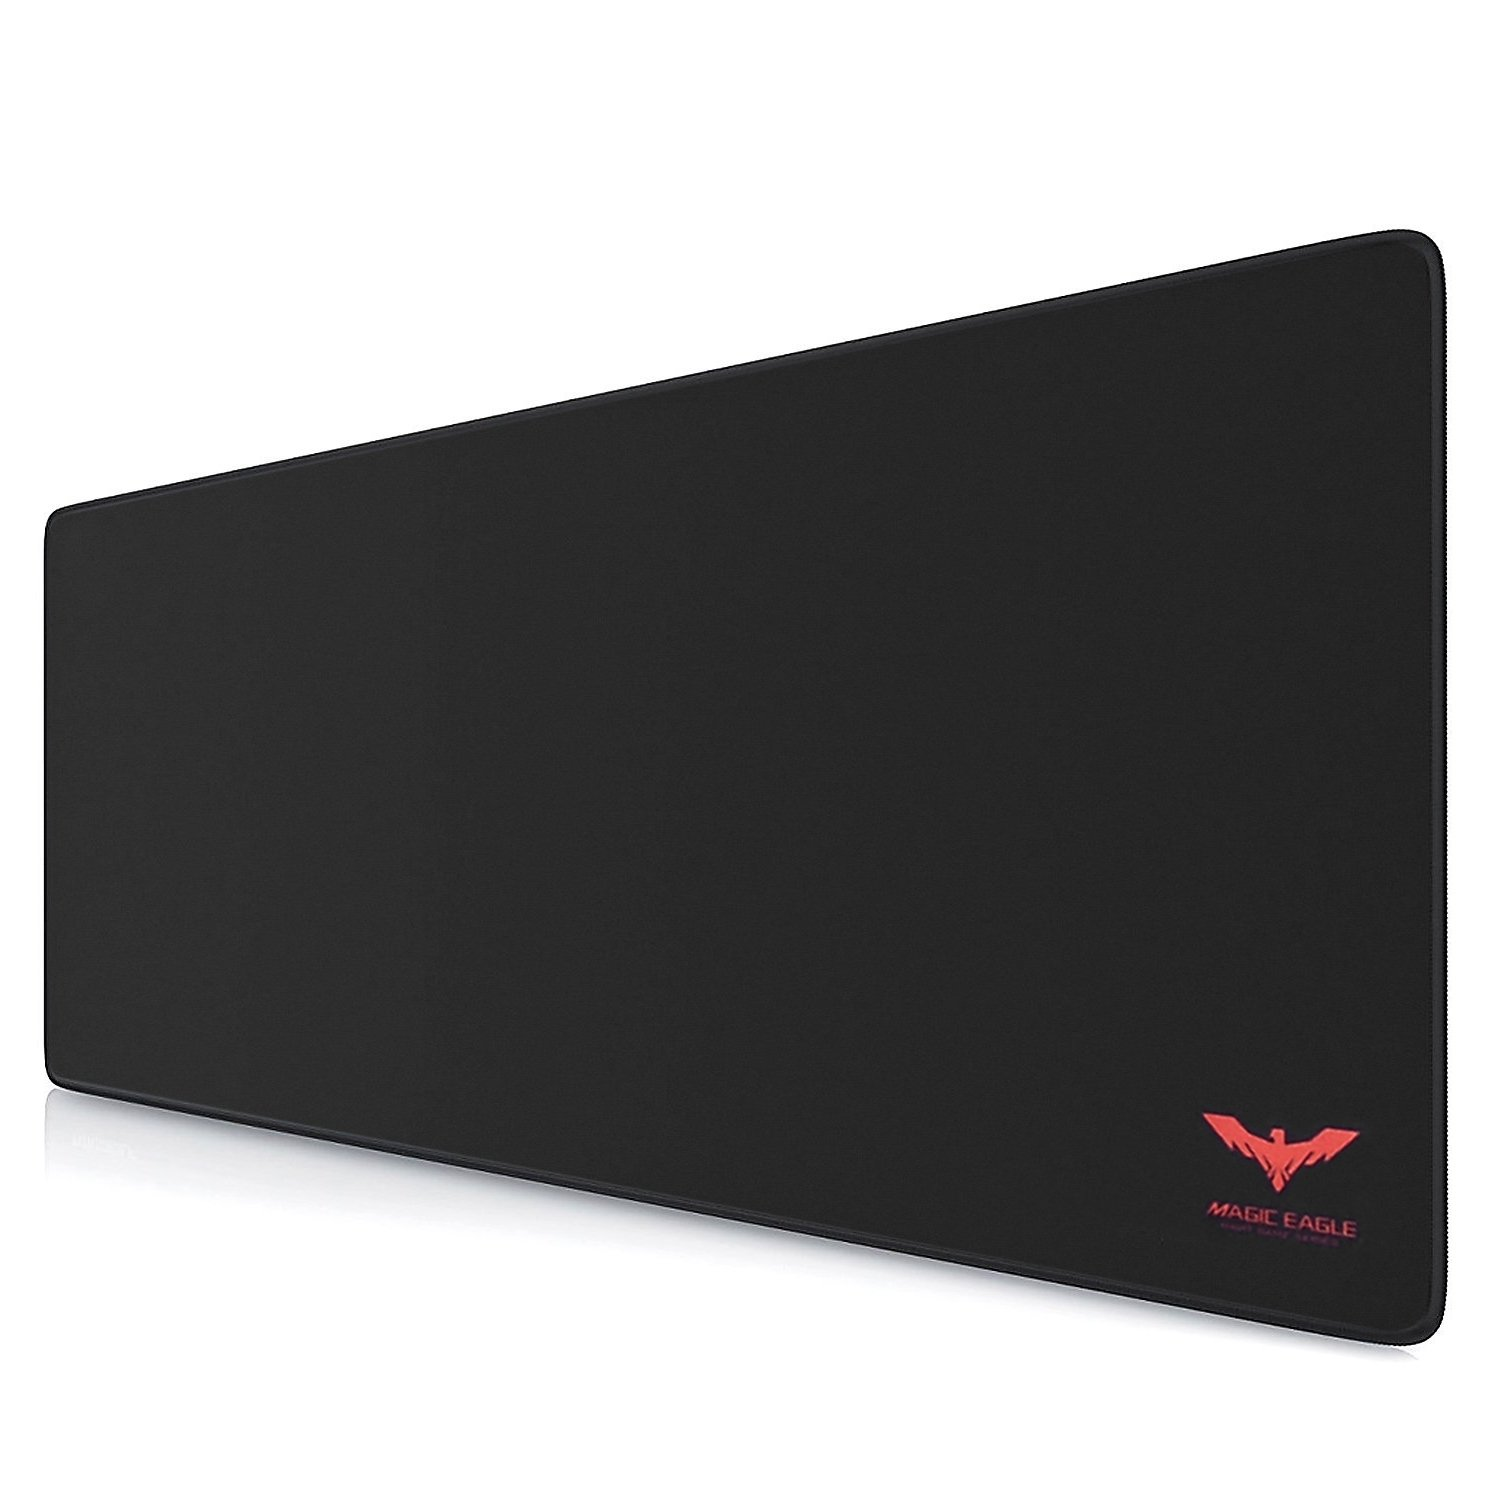 Havit Extended Large Gaming Mouse Pad, Non-Slip Rubber Base-36'' X 16'', 3mm Thick, Black (HV-MP855)